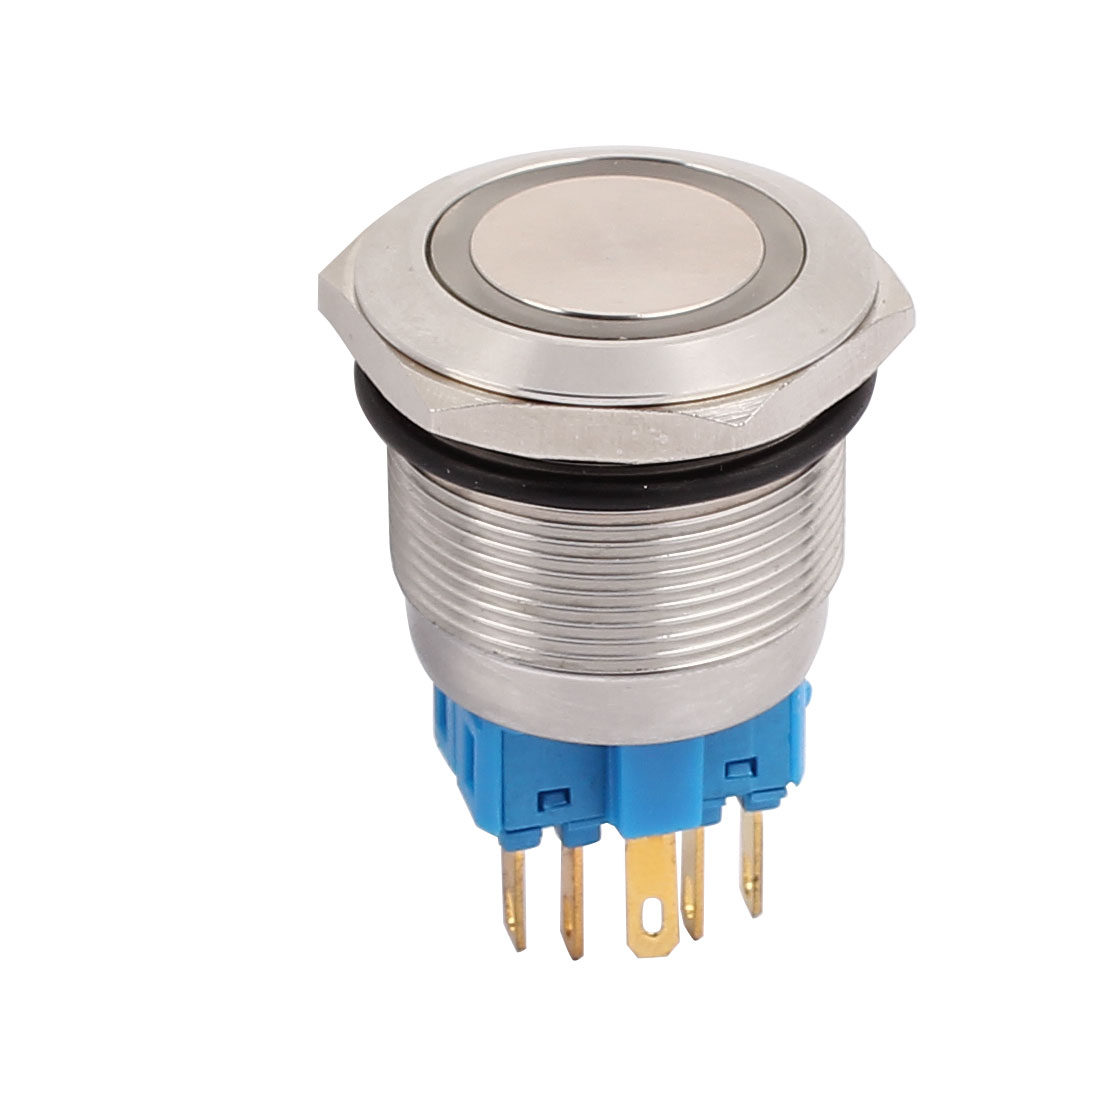 20mm Button Dia Yellow LED Momentary Stainless Push Button Switch 6 Terminals